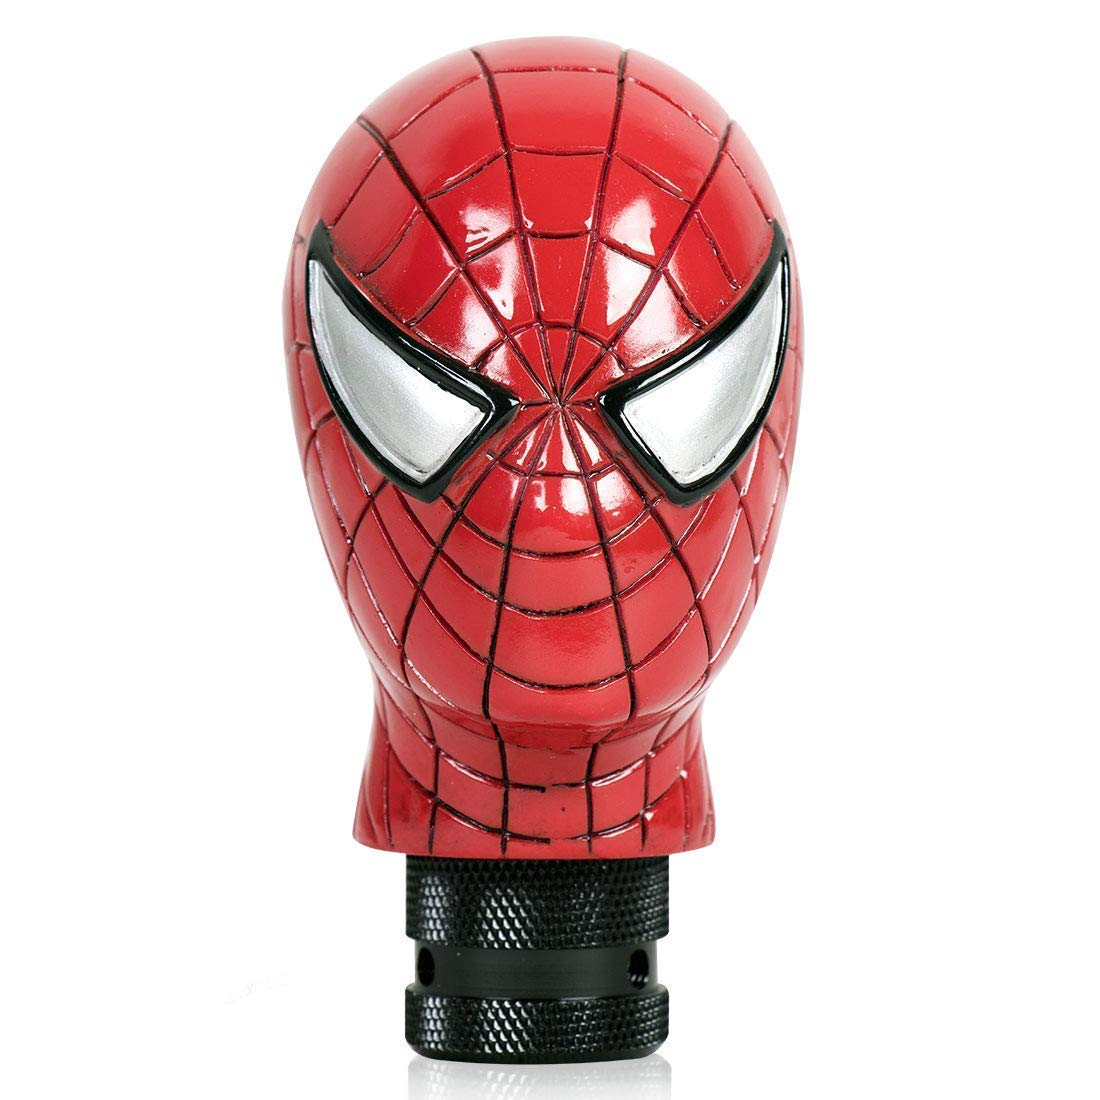 universal-spiderman-gear-shift-knob-for-all-vehicles-red